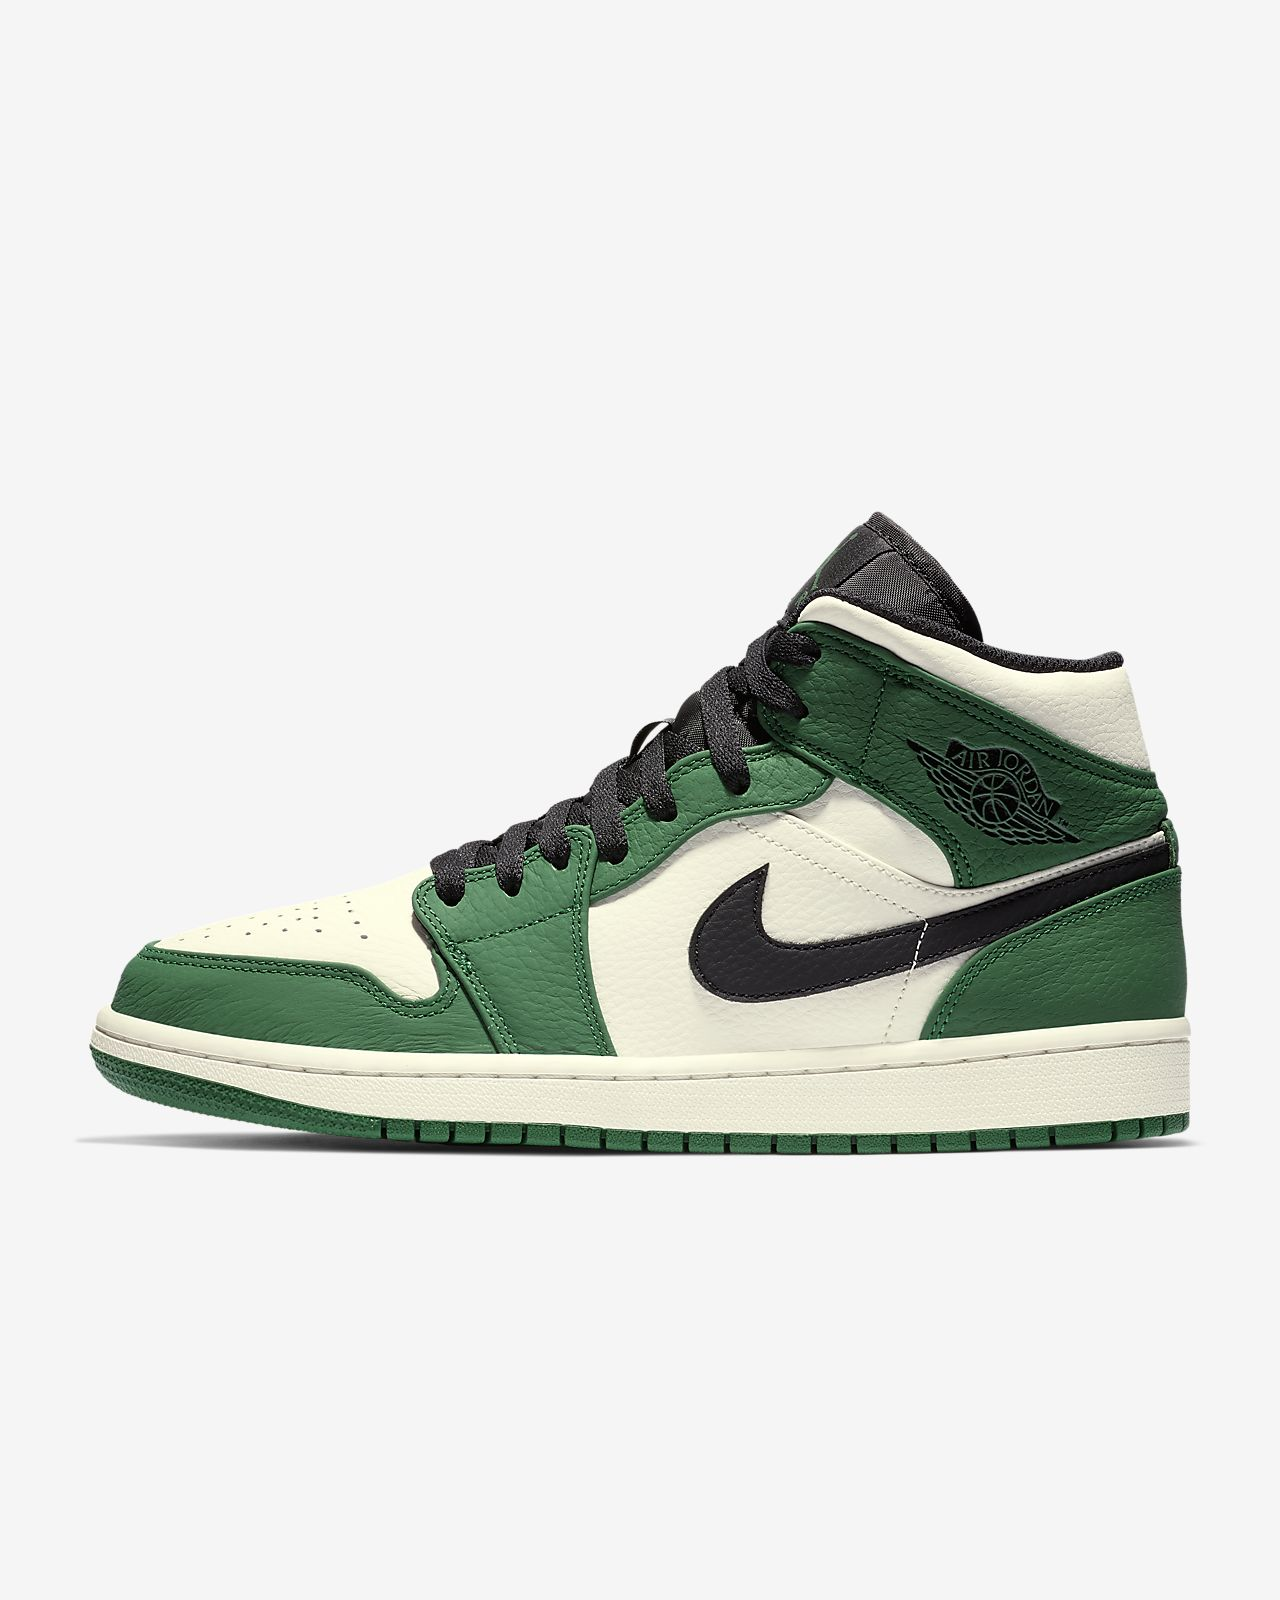 1a6ce20ea6d152 Air Jordan 1 Mid SE Men s Shoe. Nike.com